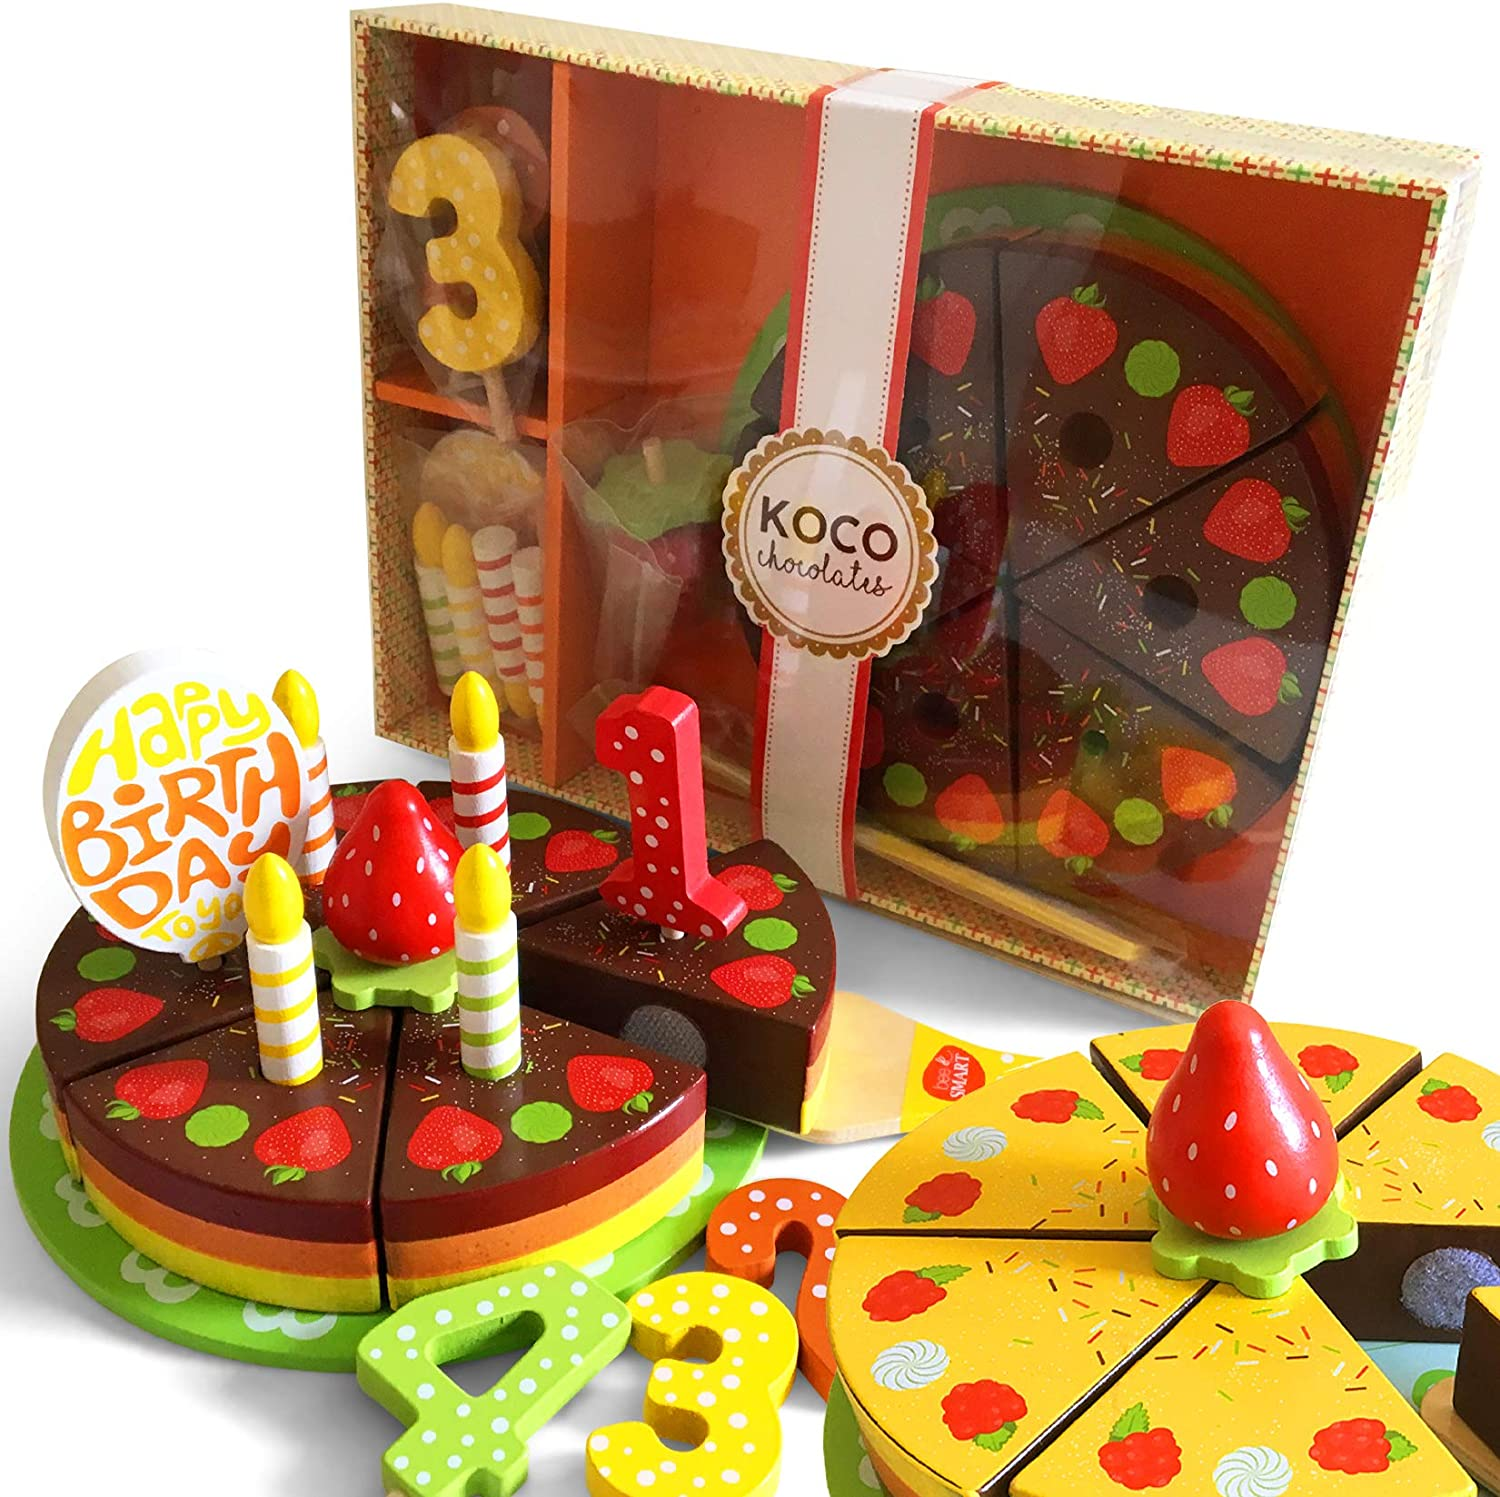 Wooden Toy Play Birthday Cake Set - Wooden Pretend Play Food Toy,18 Pieces Inclwith Wooden Cake Server, Wooden Plate, Wooden Candles, Fruit and Decorations, Reversible 2-in-1 Cake, Rainbow Design